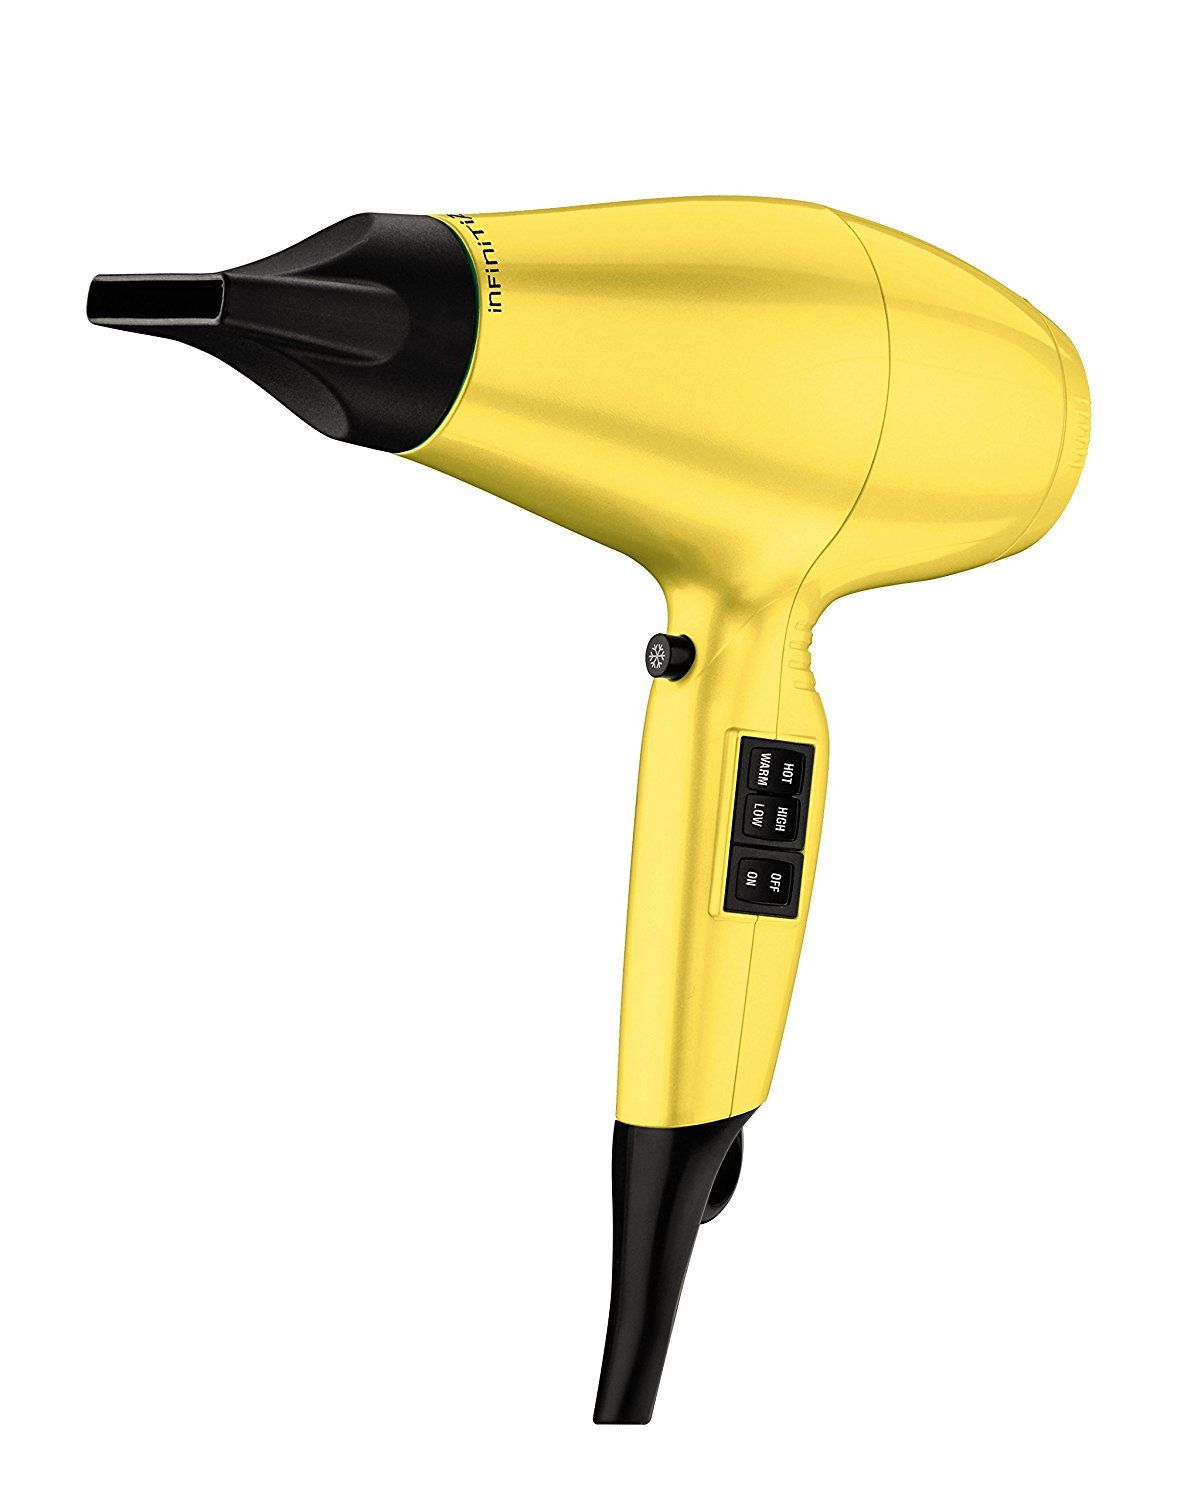 watt aluminum dryer conair over by ac infiniti styling free orders hair beauty shipping infinity overstock on health tool motor pro product